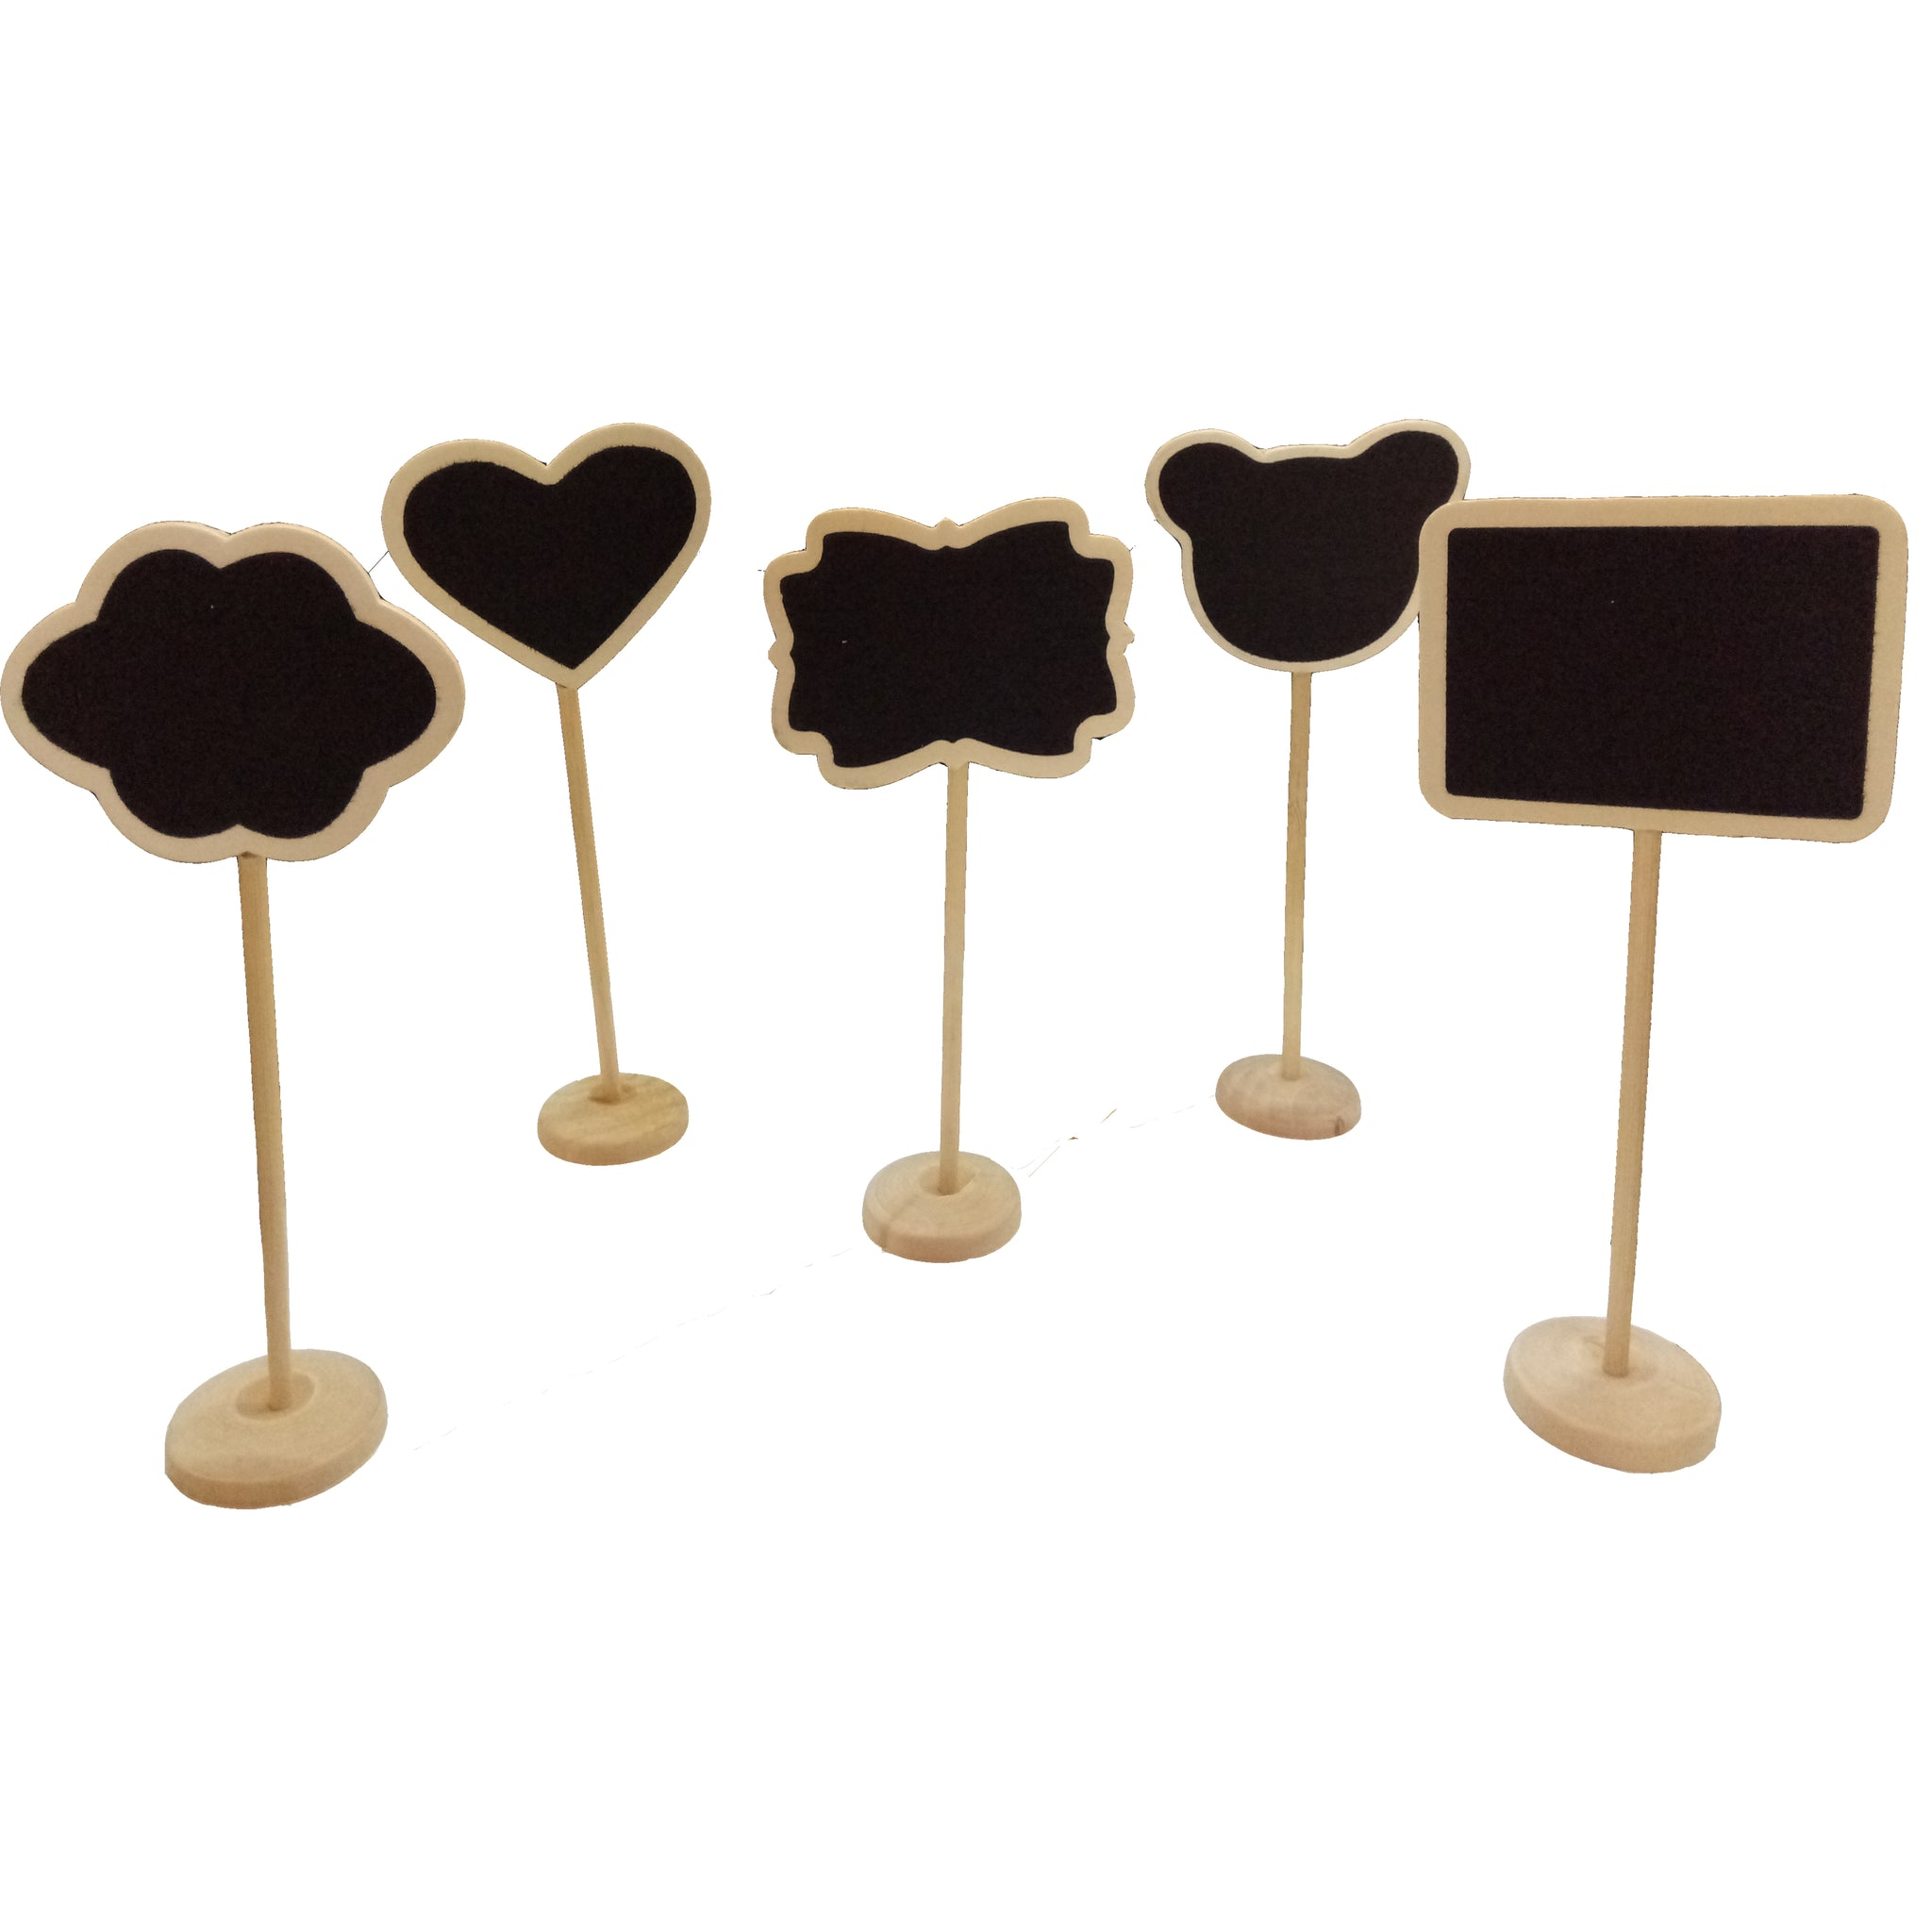 Set of 5 Wooden Mini Chalkboard